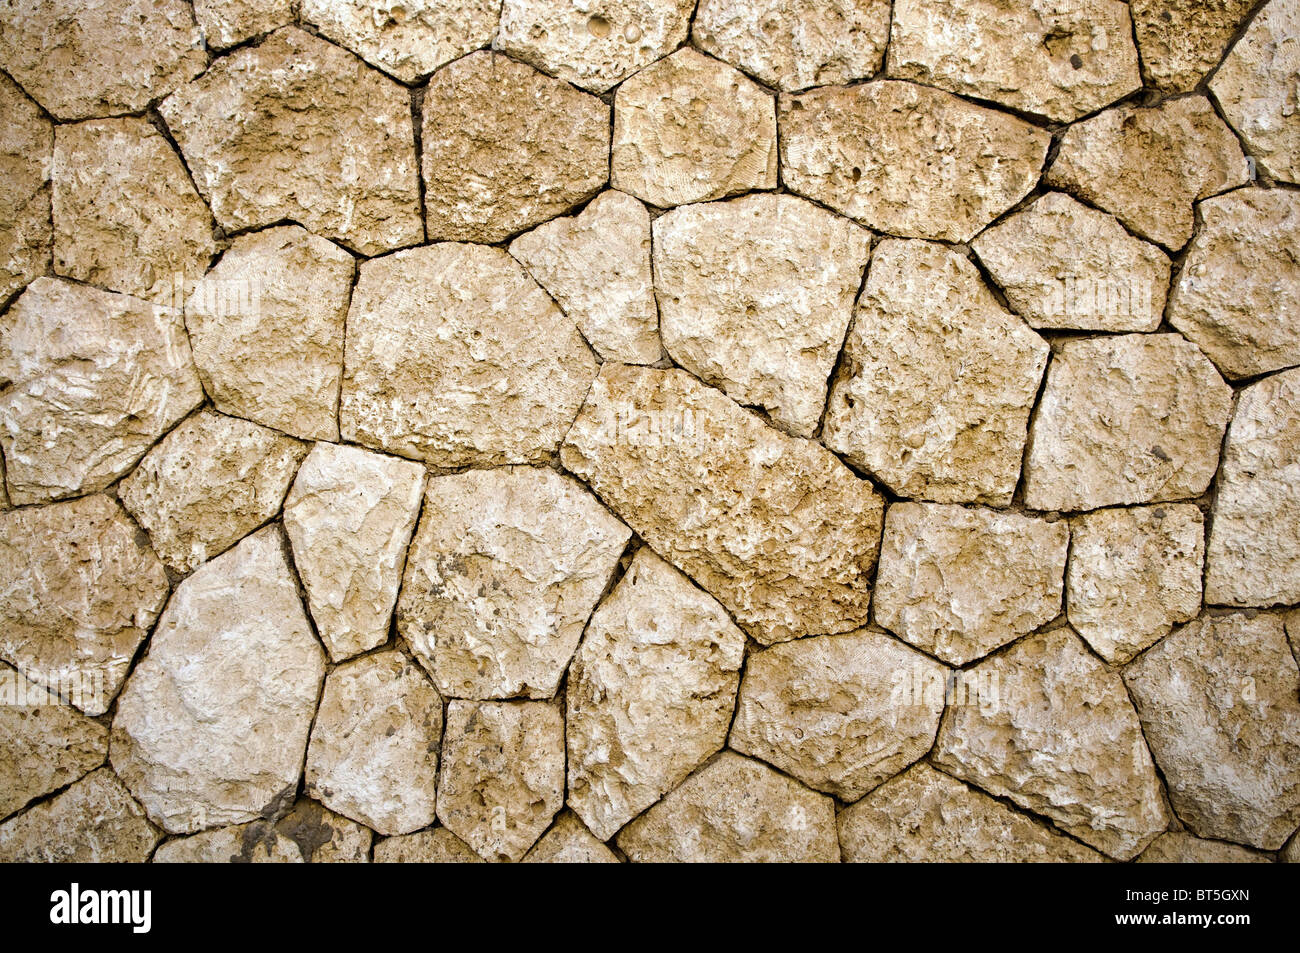 weathered stone wall background or texture - Stock Image